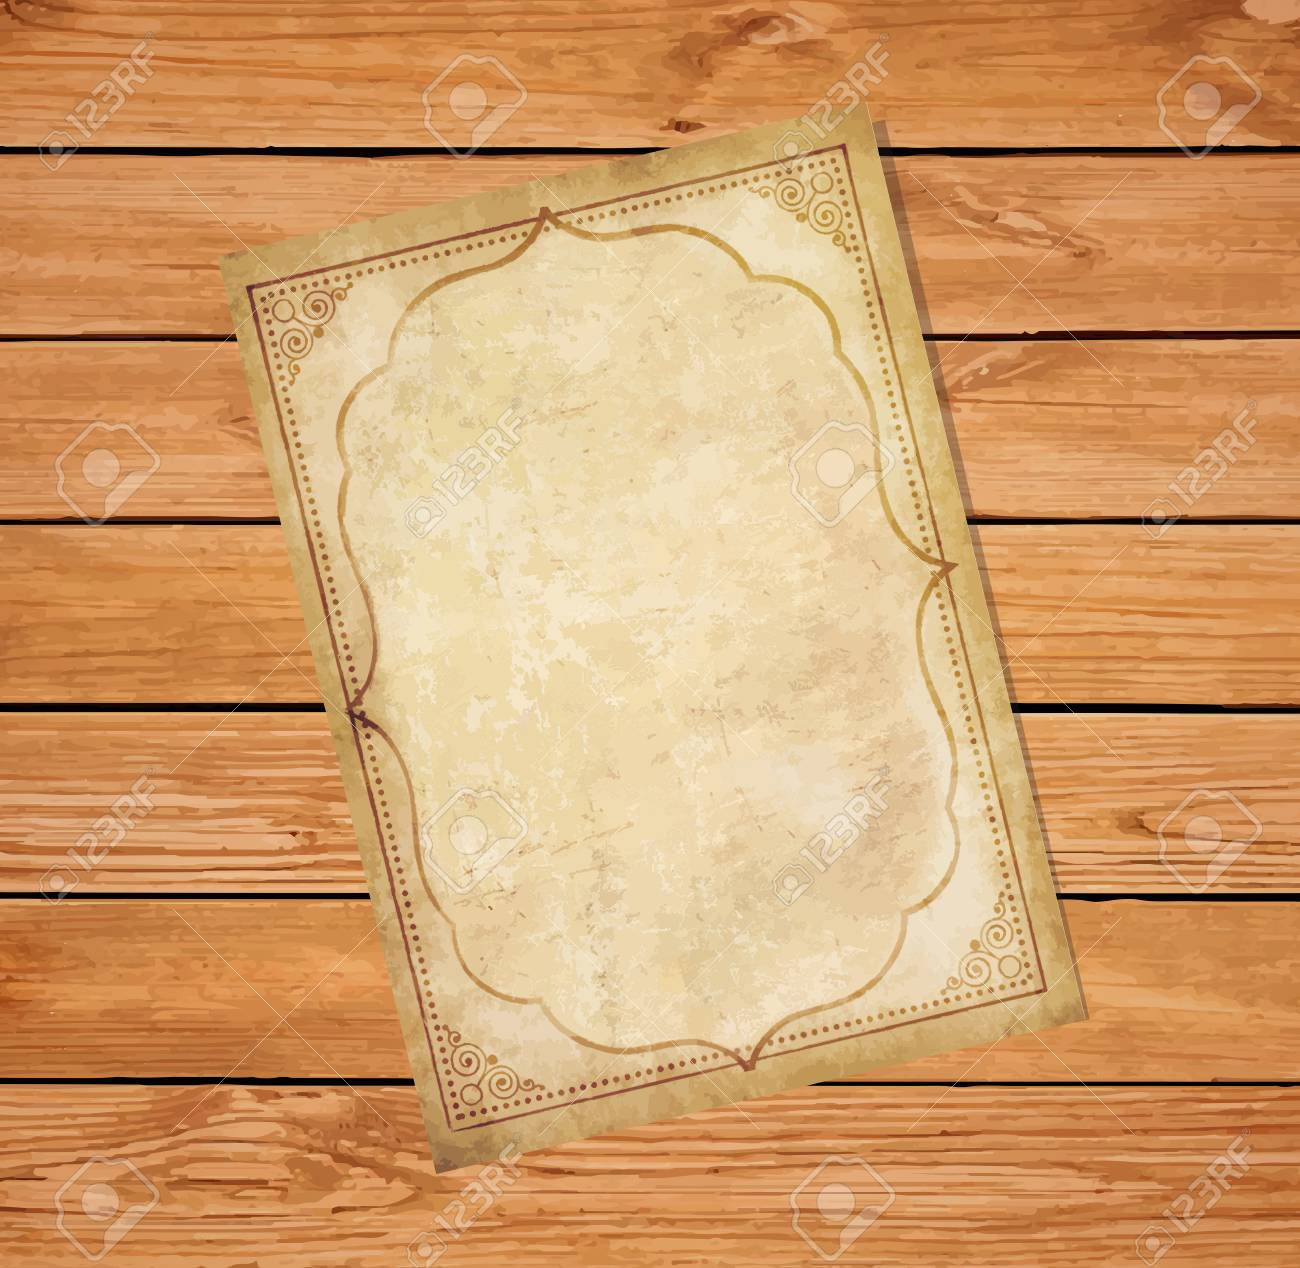 Old Grungy Papyrus With Curly Oriental Ornamental Frame On Rustic Wooden Background Worn Template For